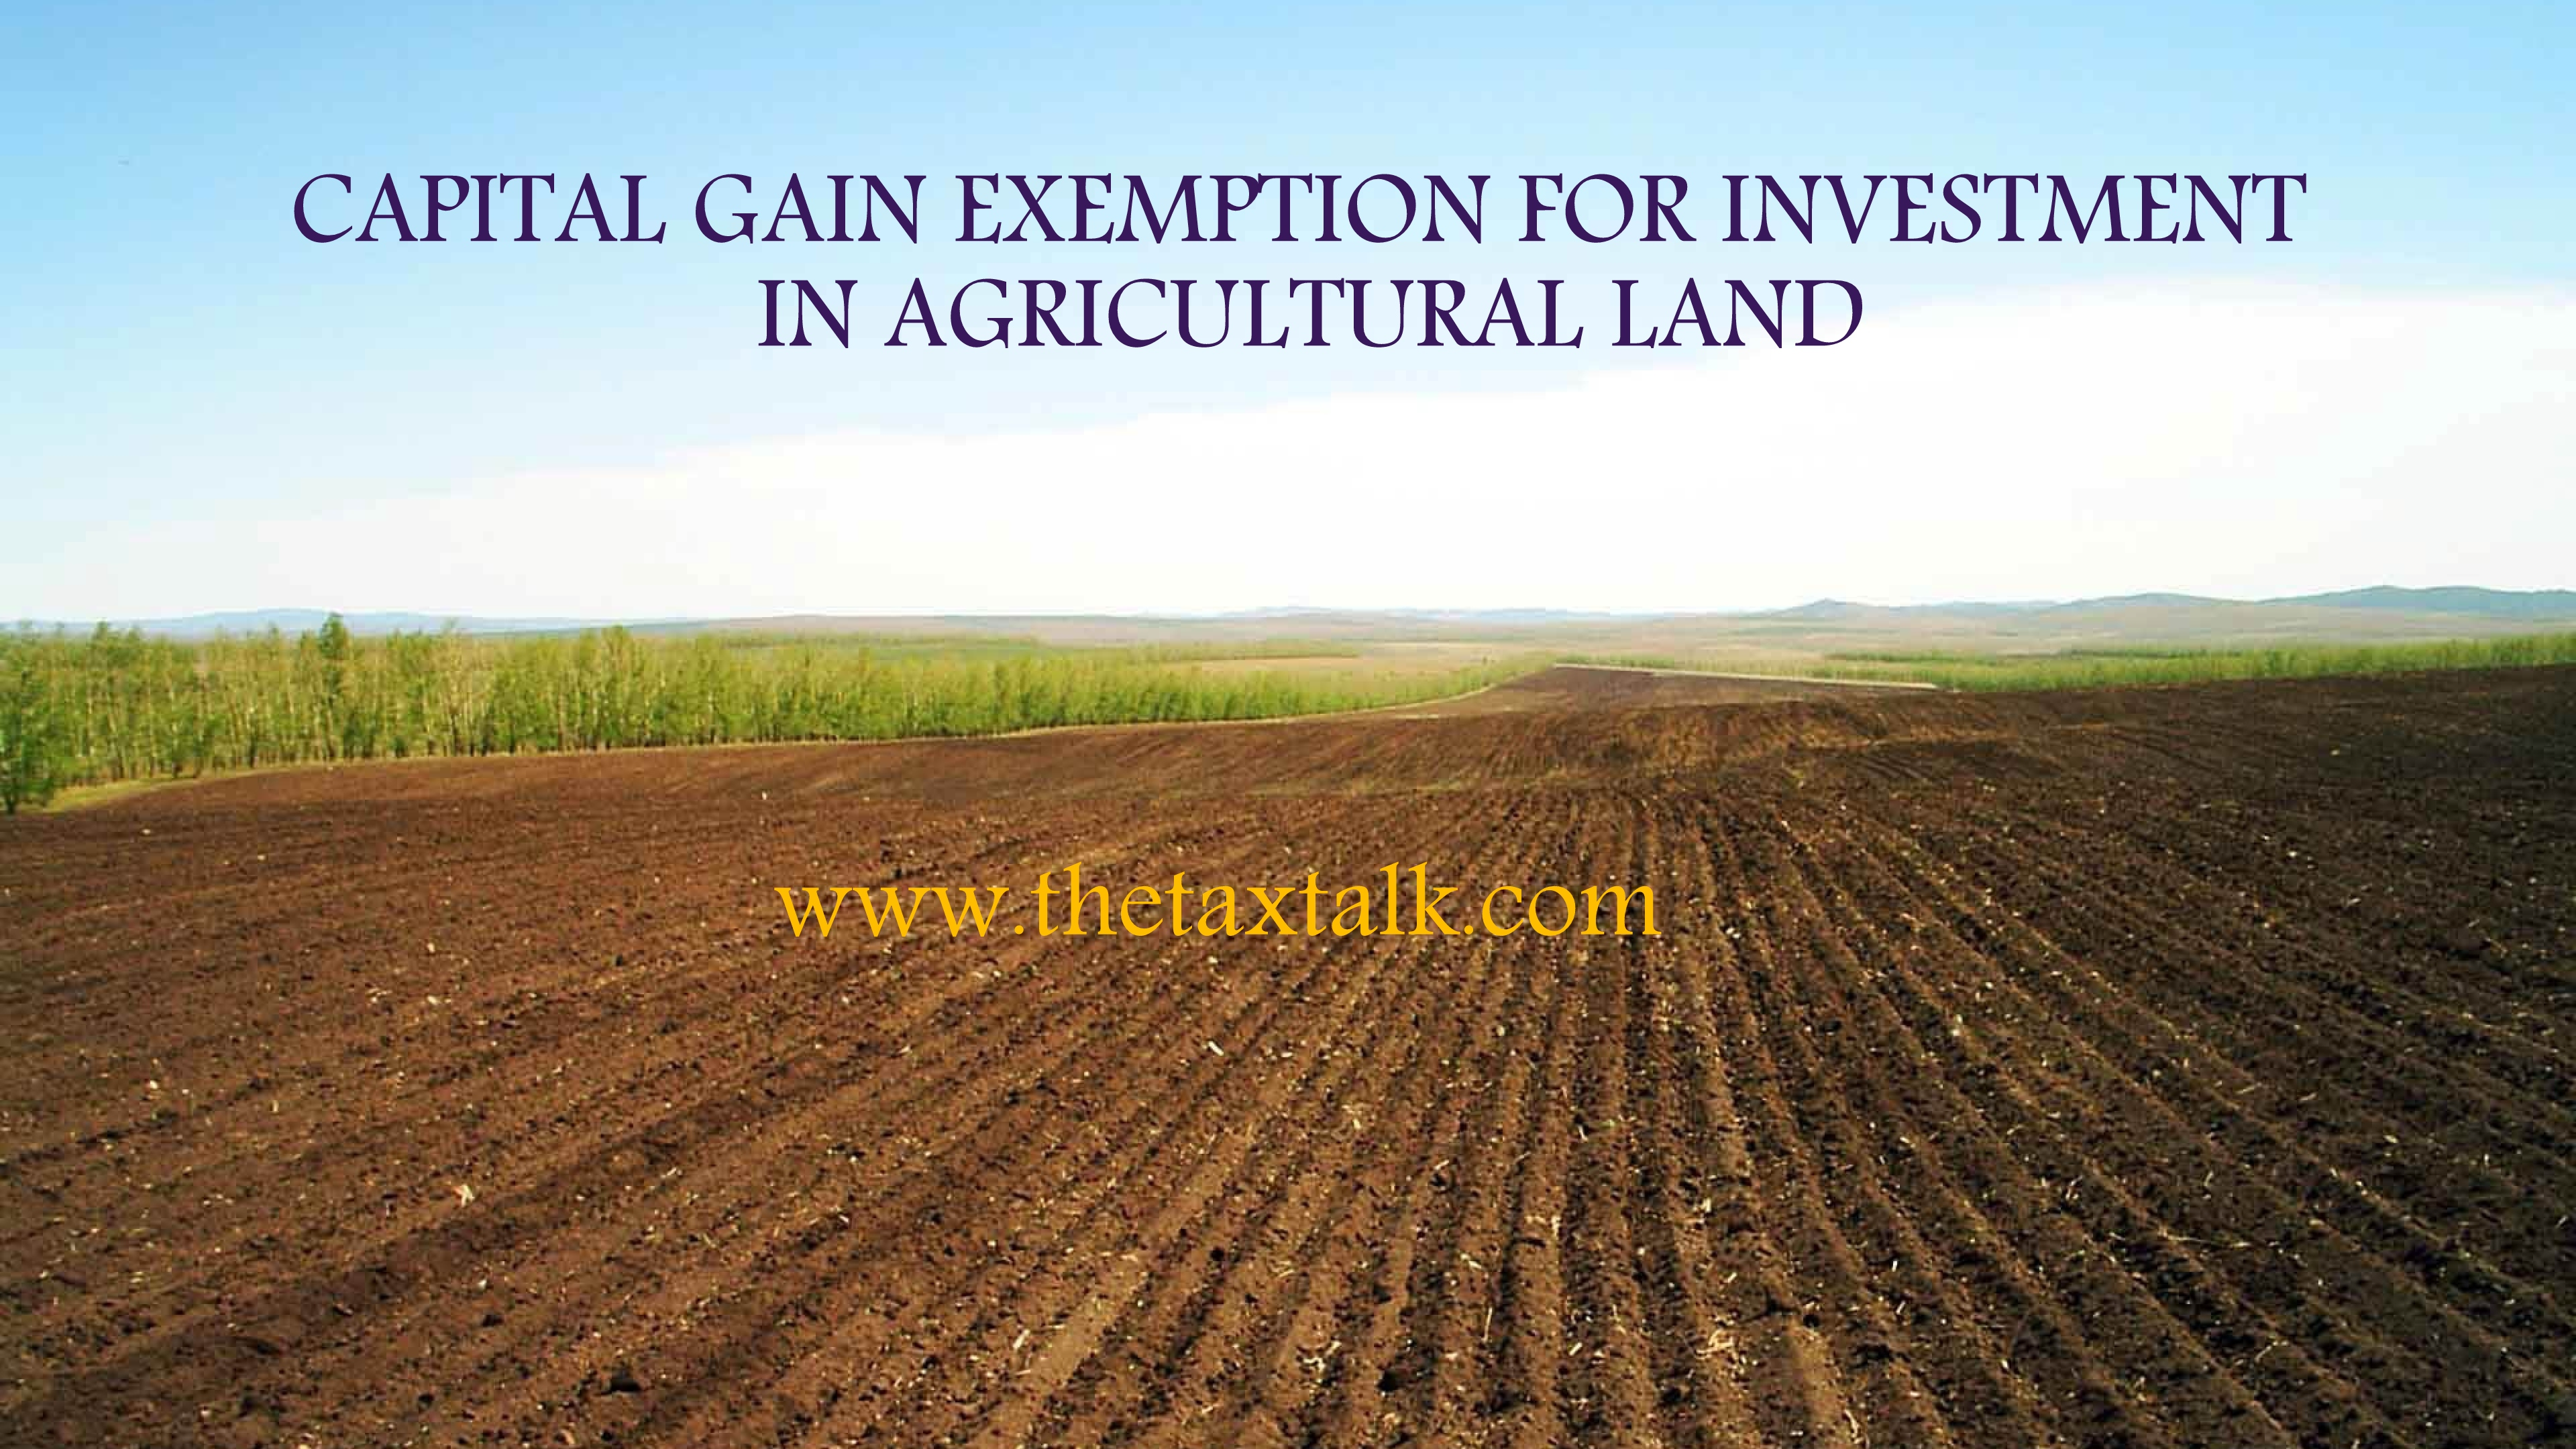 CAPITAL GAIN EXEMPTION FOR INVESTMENT IN AGRI LAND CAPITAL GAIN EXEMPTION FOR INVESTMENT IN AGRICULTURAL LAND